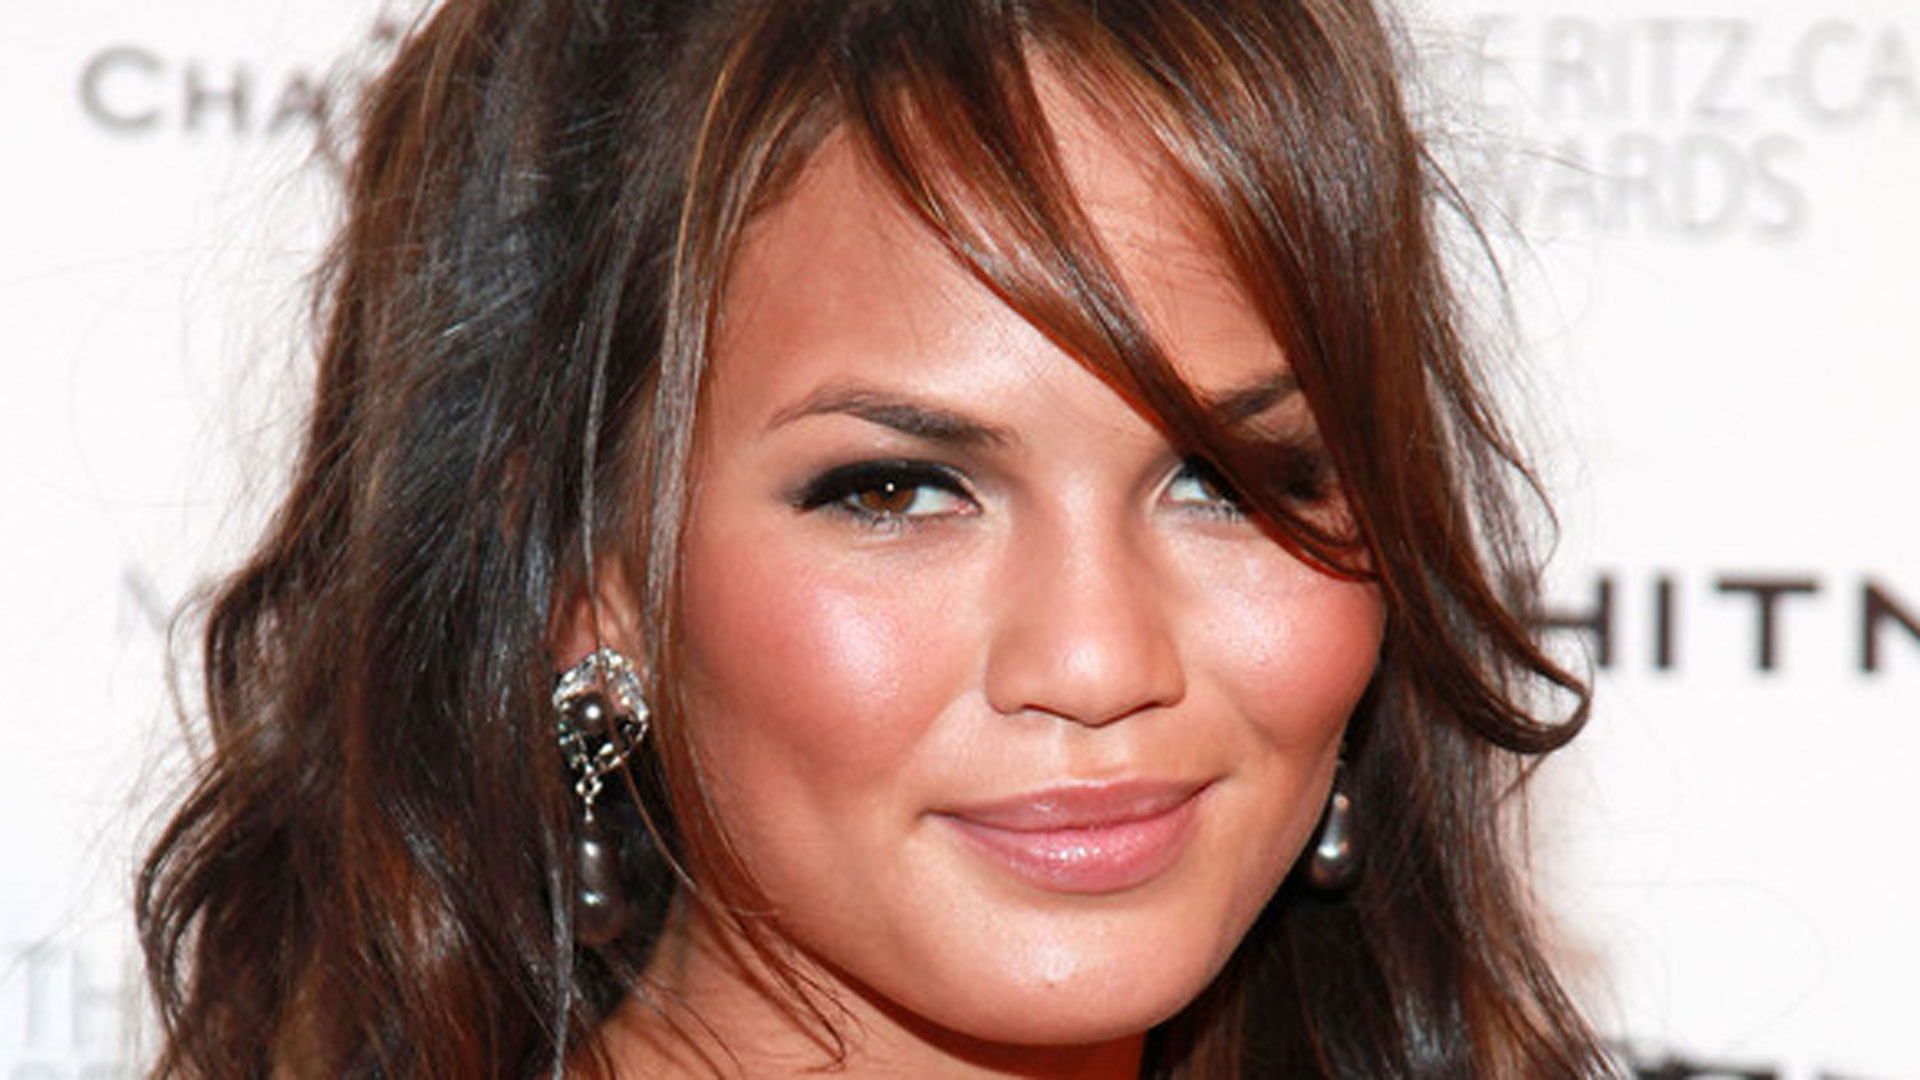 Shady things about Chrissy Teigen that everyone just ignores